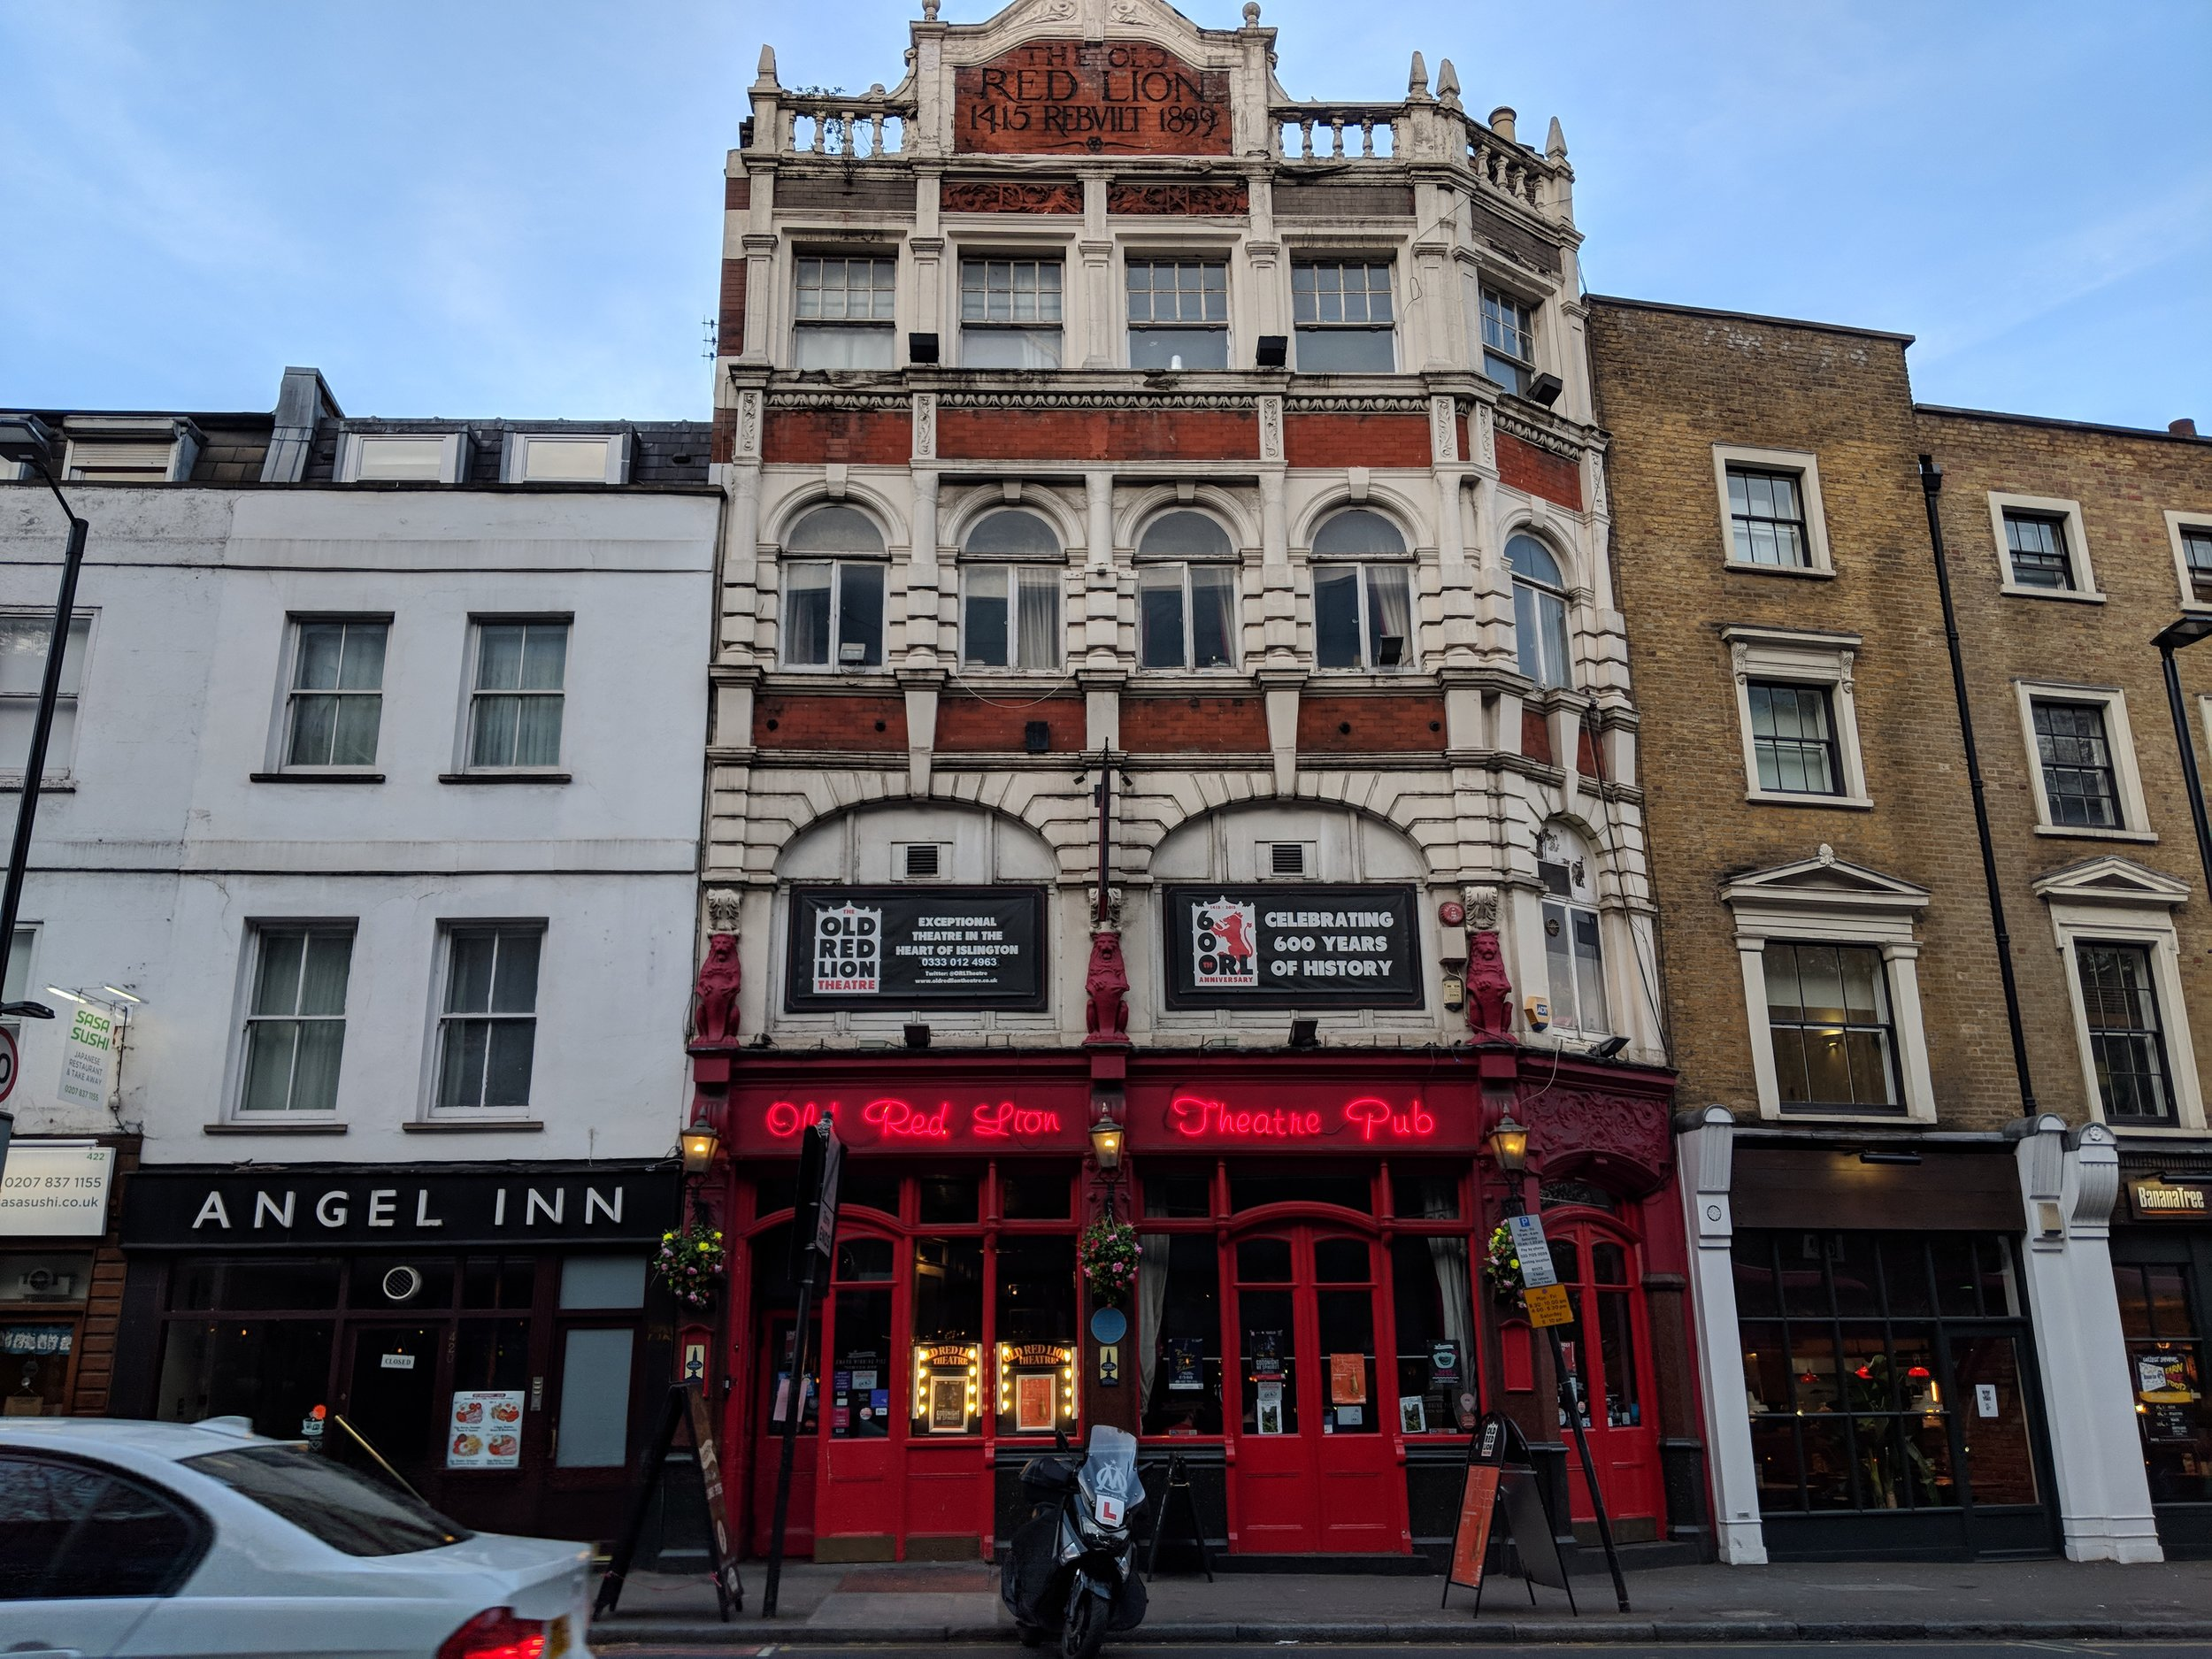 Old Red Lion Theatre - visited 15/04/2019